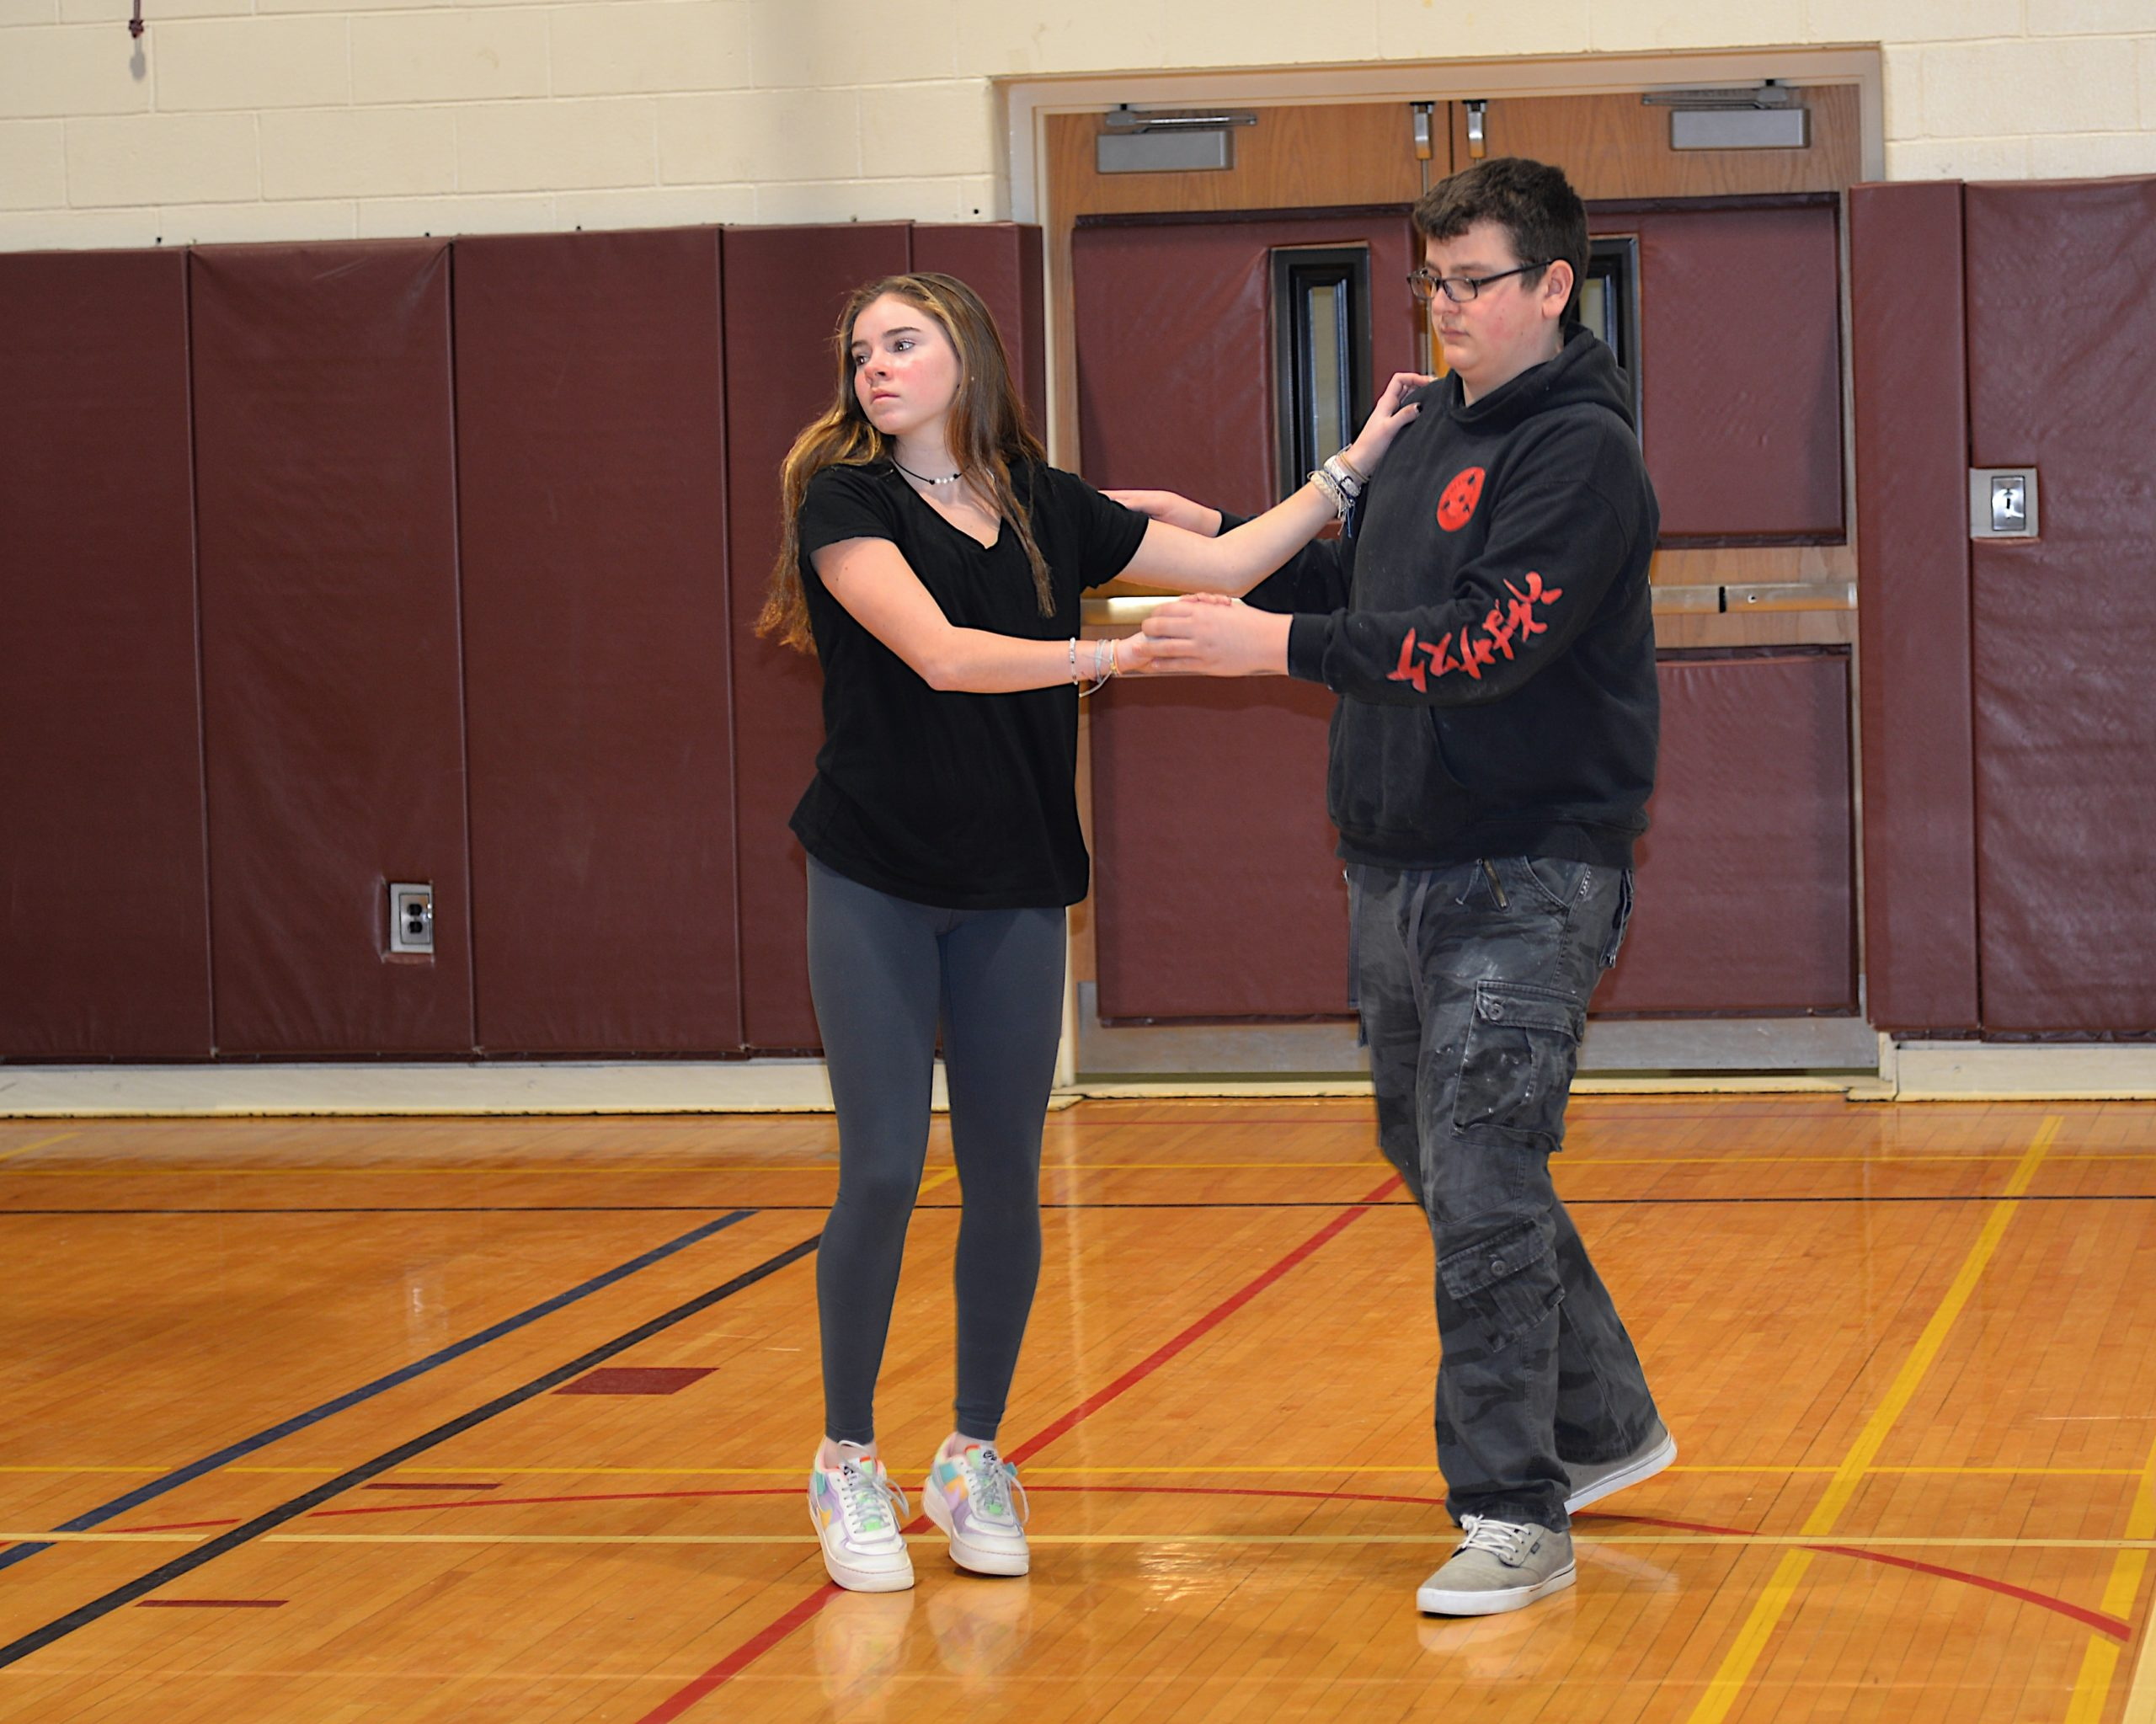 East Hampton Middle School students prepare for the Mad Heart Ball, which takes place at the school on Friday, February 7. KYRIL BROMLEY